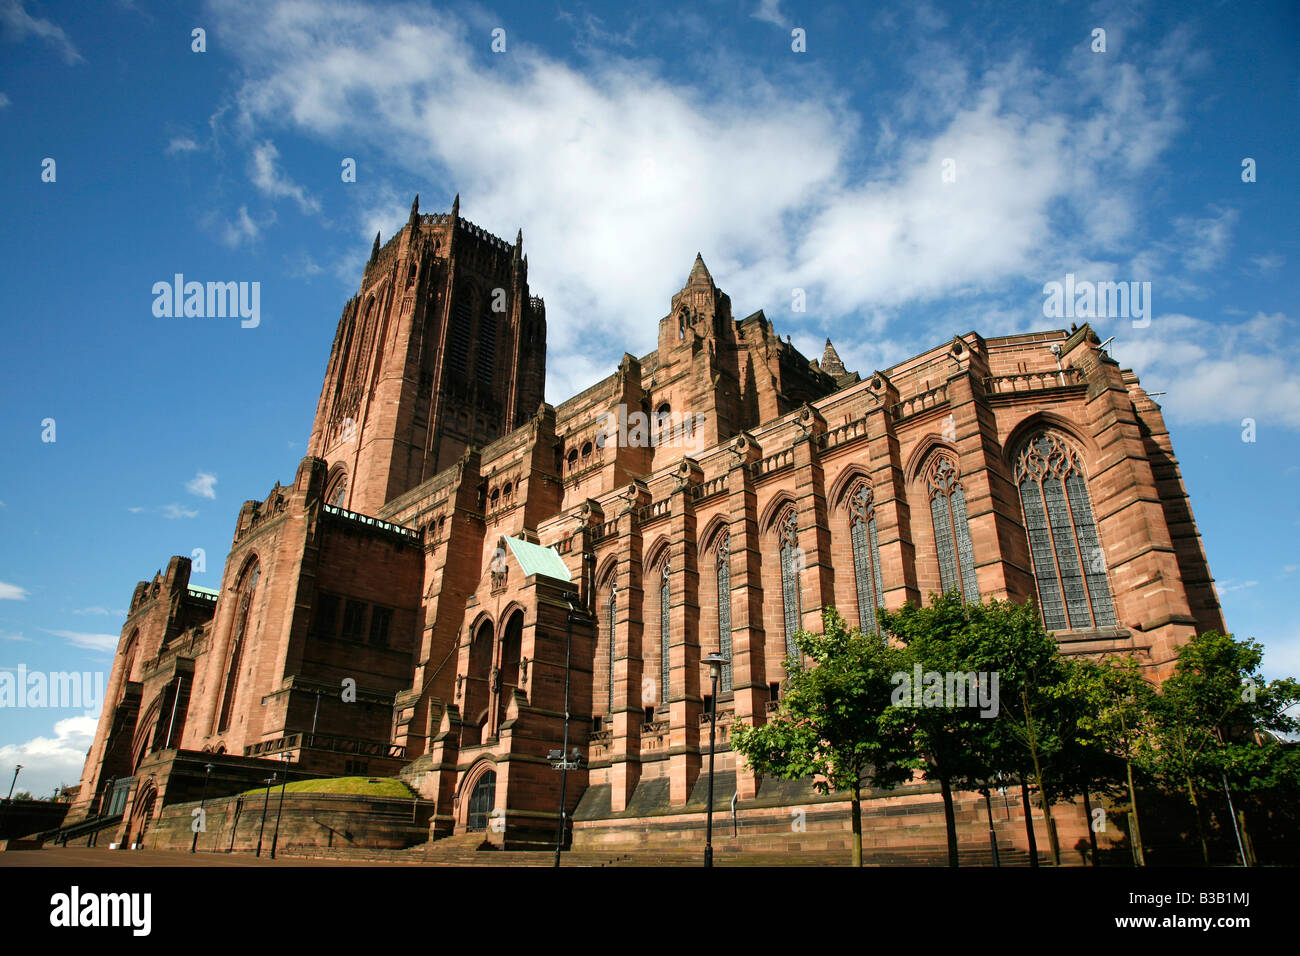 July 2008 - Liverpool Anglican Cathedral Liverpool England UK - Stock Image